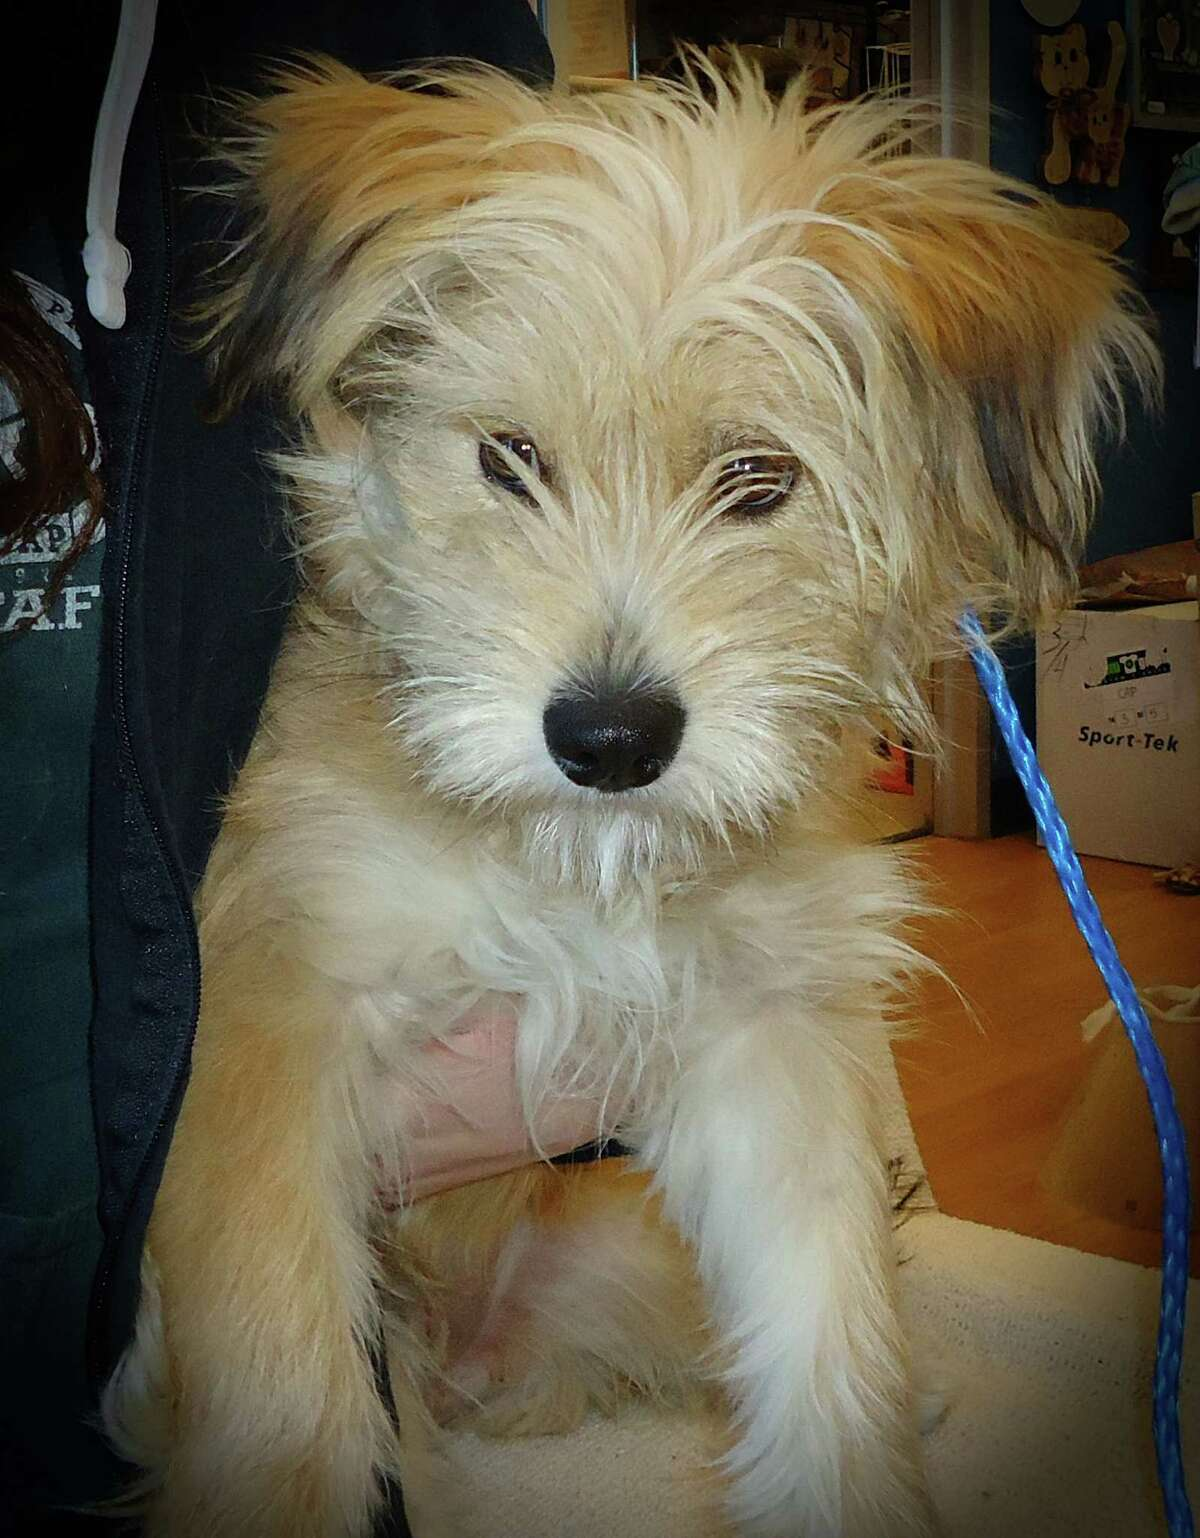 Next up is Kerri, a 7 month old Cairn Terrier mix Kerri was a stray, so we don t know much about him, but he s really cute and really sweet natured. He will do tricks for treats, but doesn t want to be in the circus, preferring a real home instead.